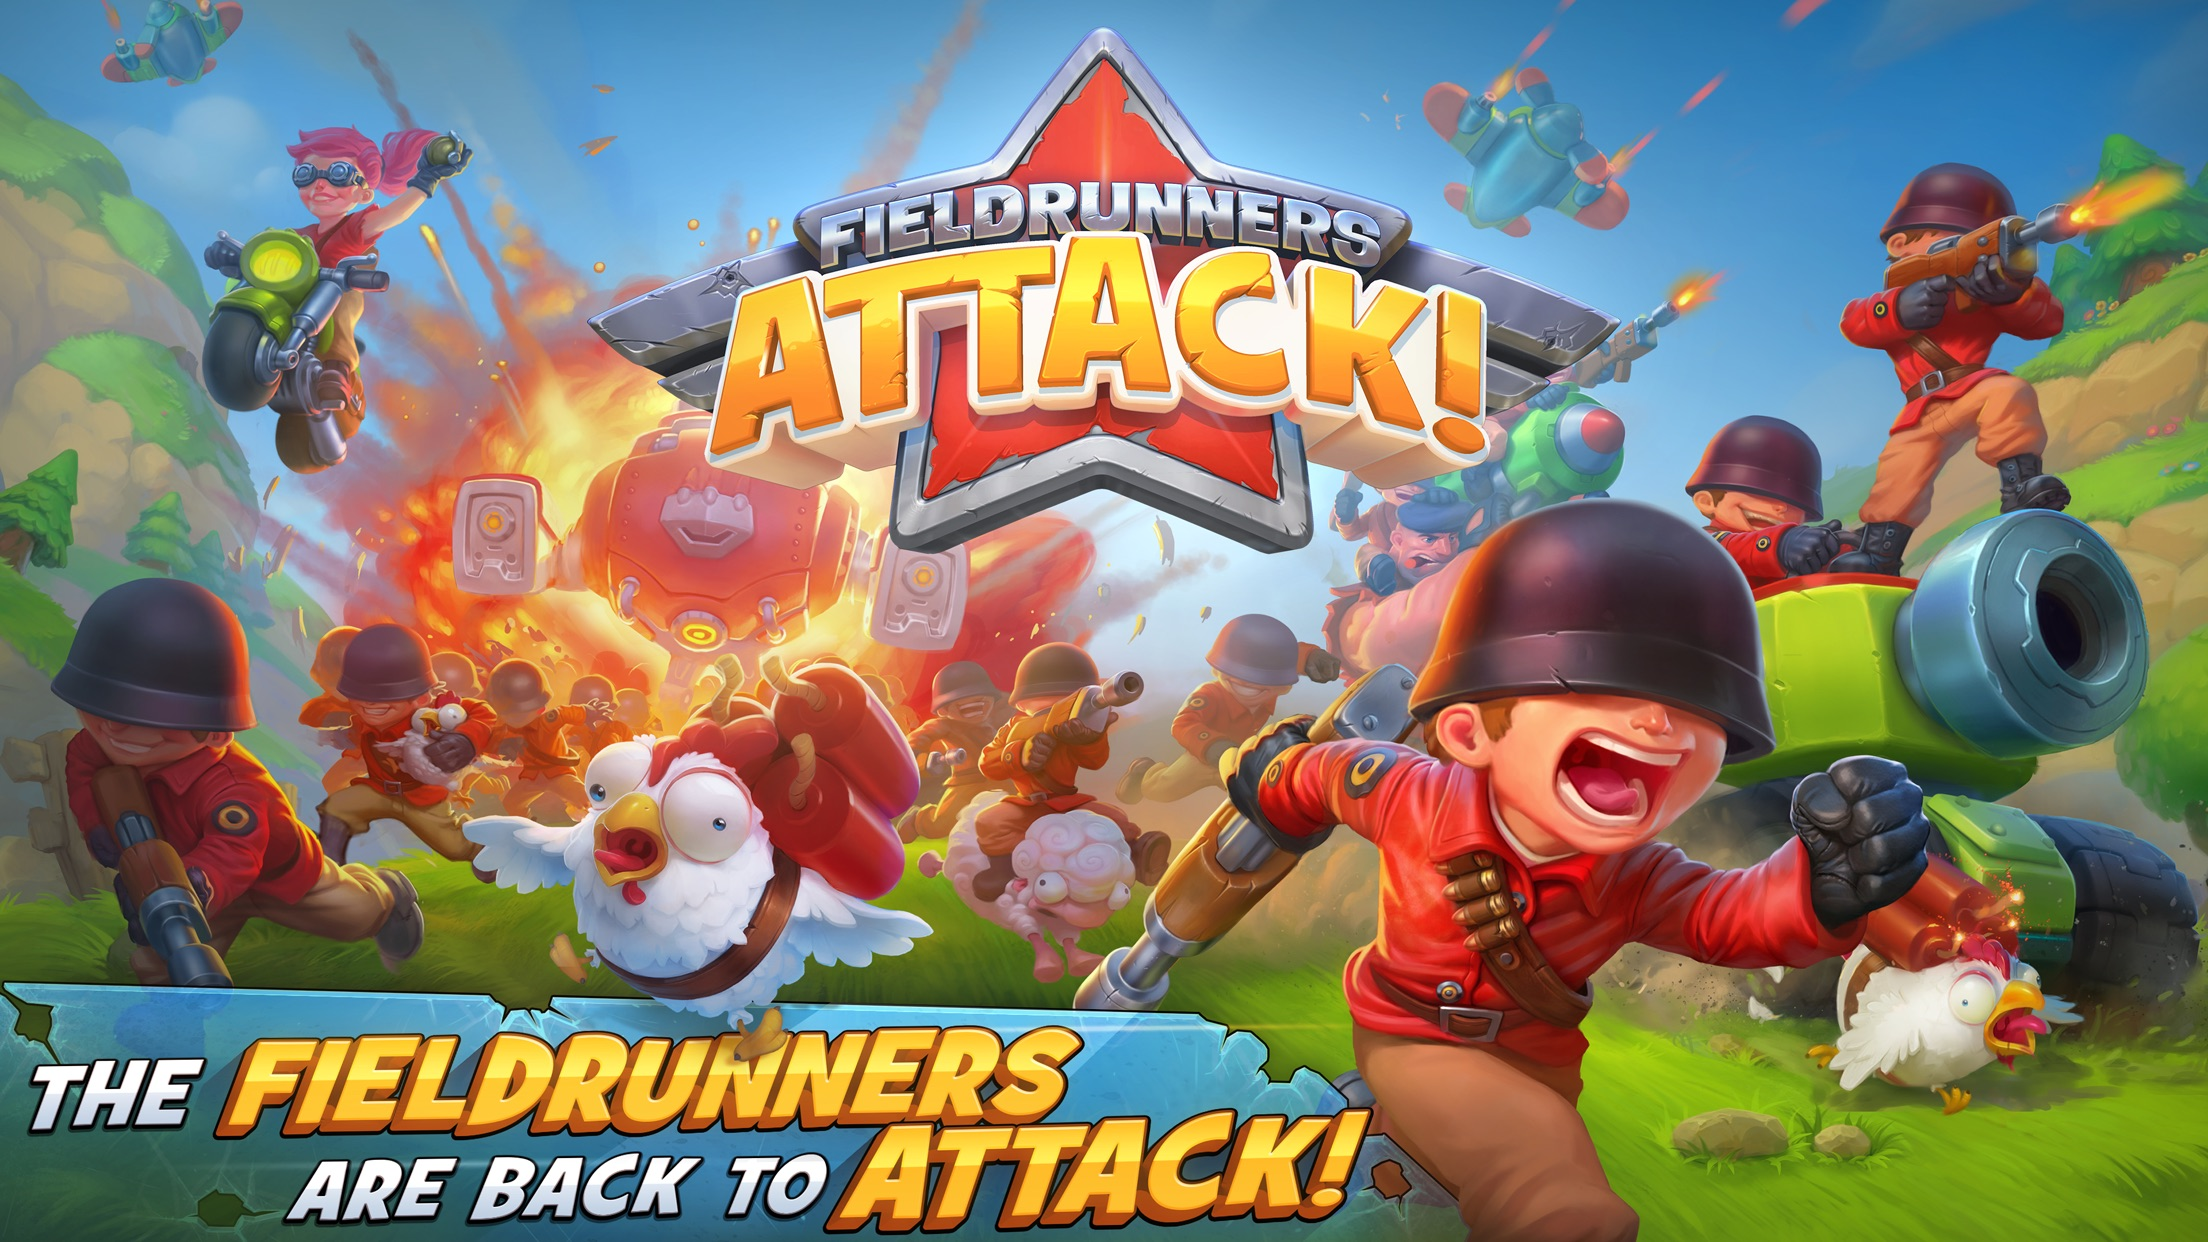 Fieldrunners Attack! Screenshot